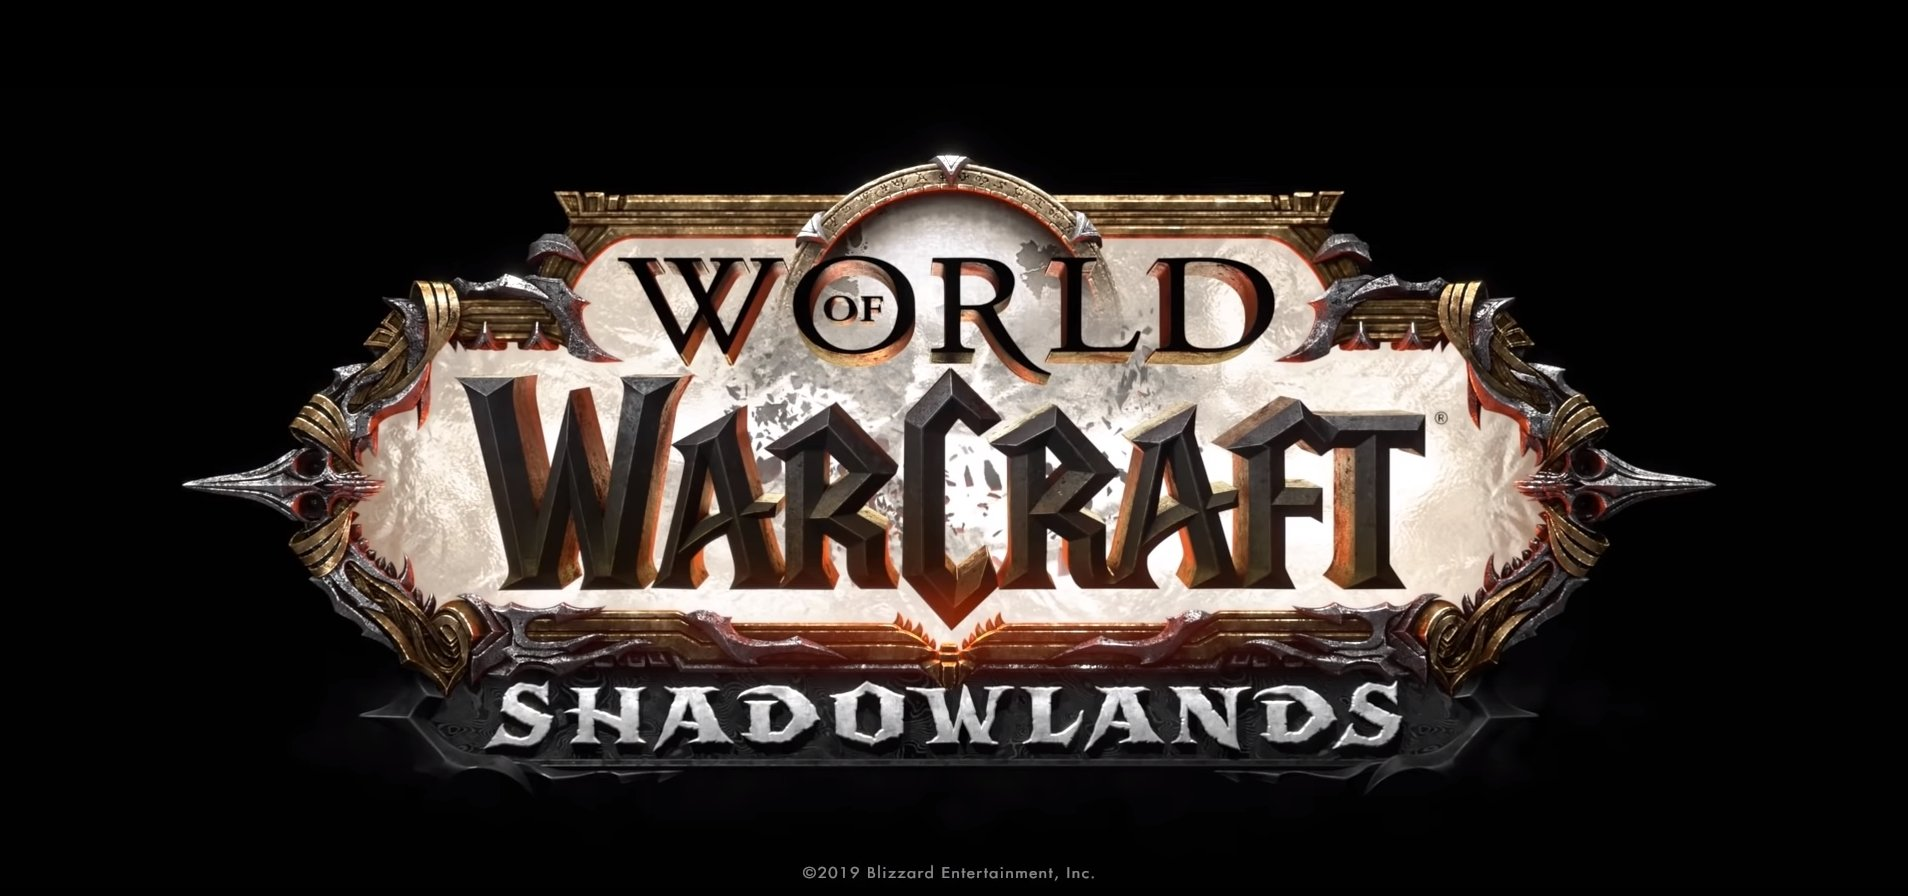 Blizzard Increases The Price Of World Of Warcraft Subscriptions In Australia Ahead Of Shadowlands Launch